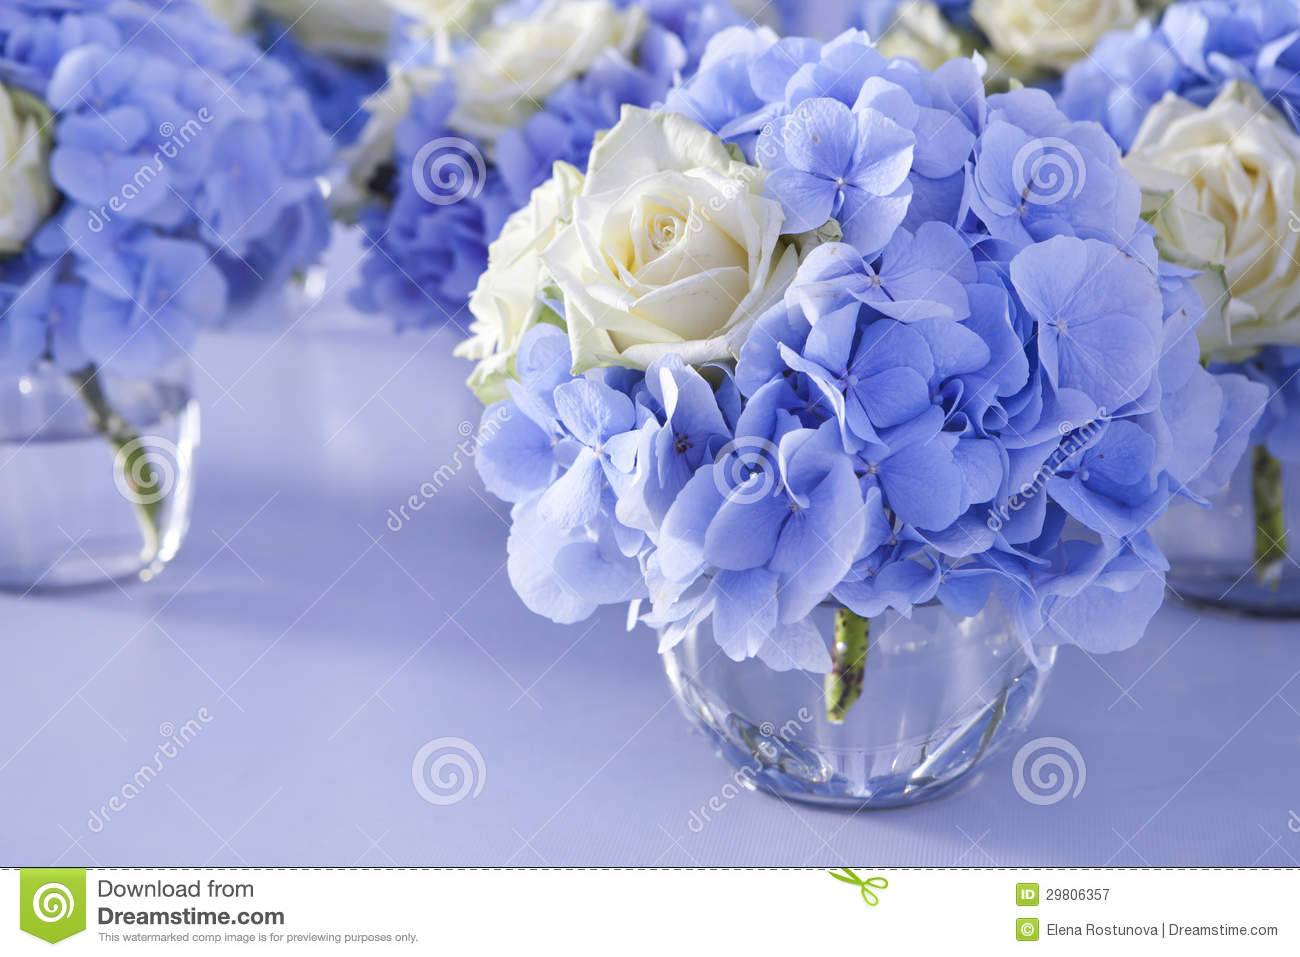 Bouquet Of White And Blue Flower In Vase Stock Image